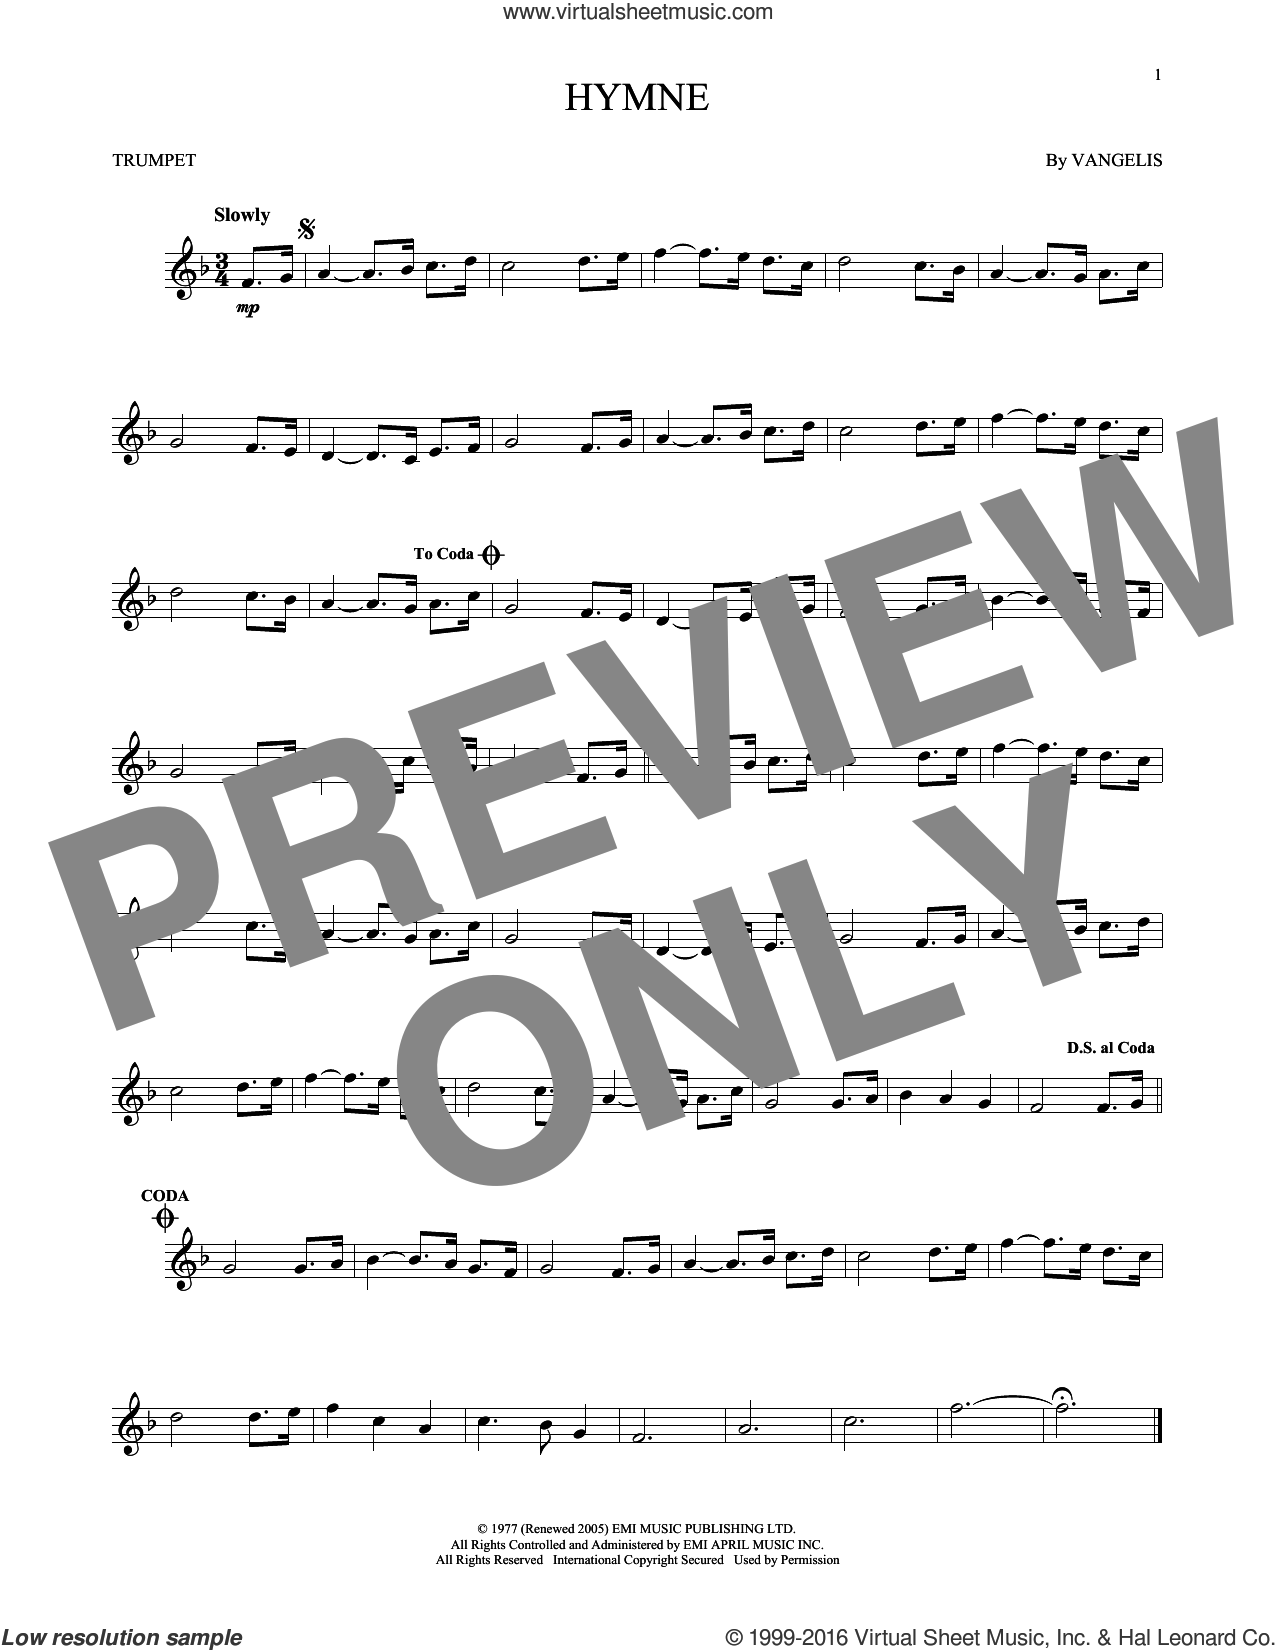 Hymne sheet music for trumpet solo by Vangelis